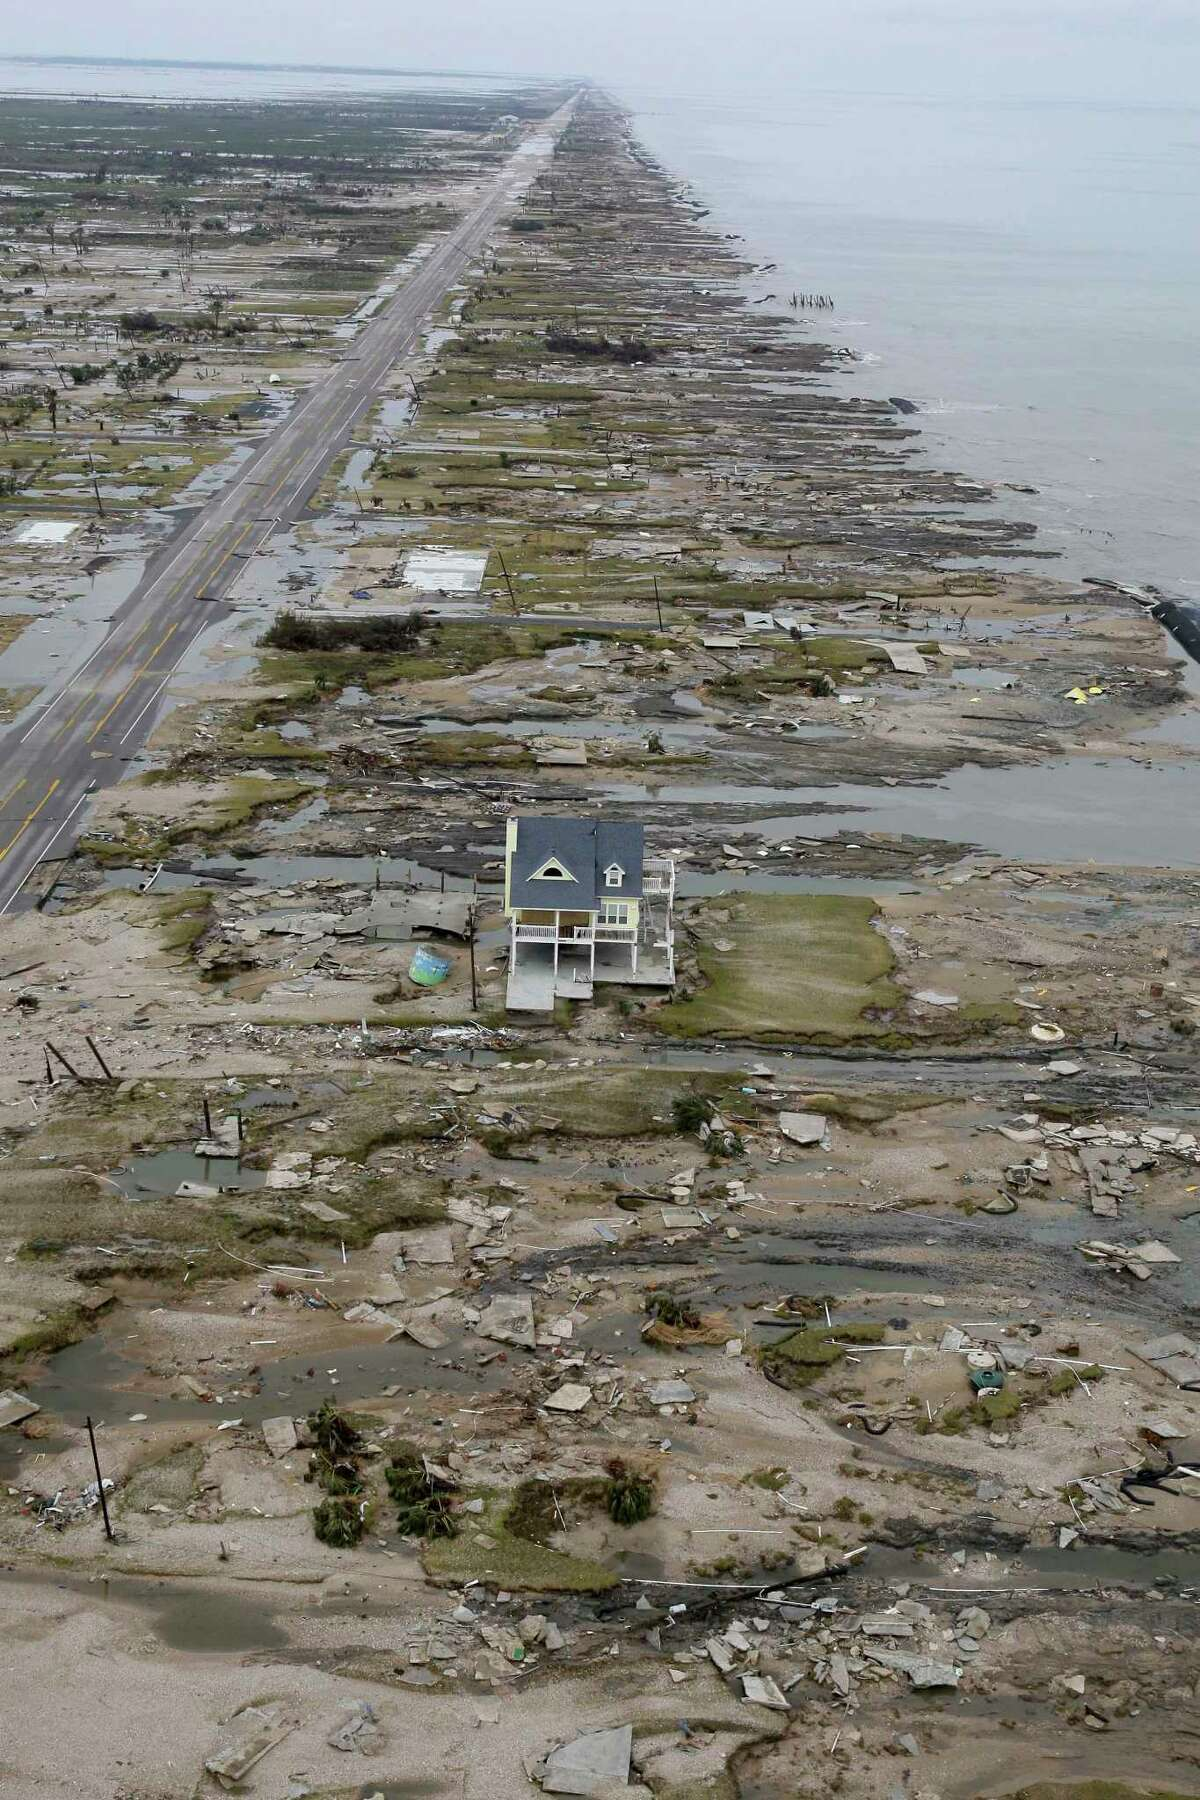 With the Gulf of Mexico seen at right, a beachfront home stands among the debris in Gilchrist, Texas on Sunday, Sept. 14, 2008 after Hurricane Ike hit the area. Ike was the first major storm to directly hit a major U.S. metro area since Hurricane Katrina devastated New Orleans in 2005. (AP Photo/David J. Phillip, Pool)